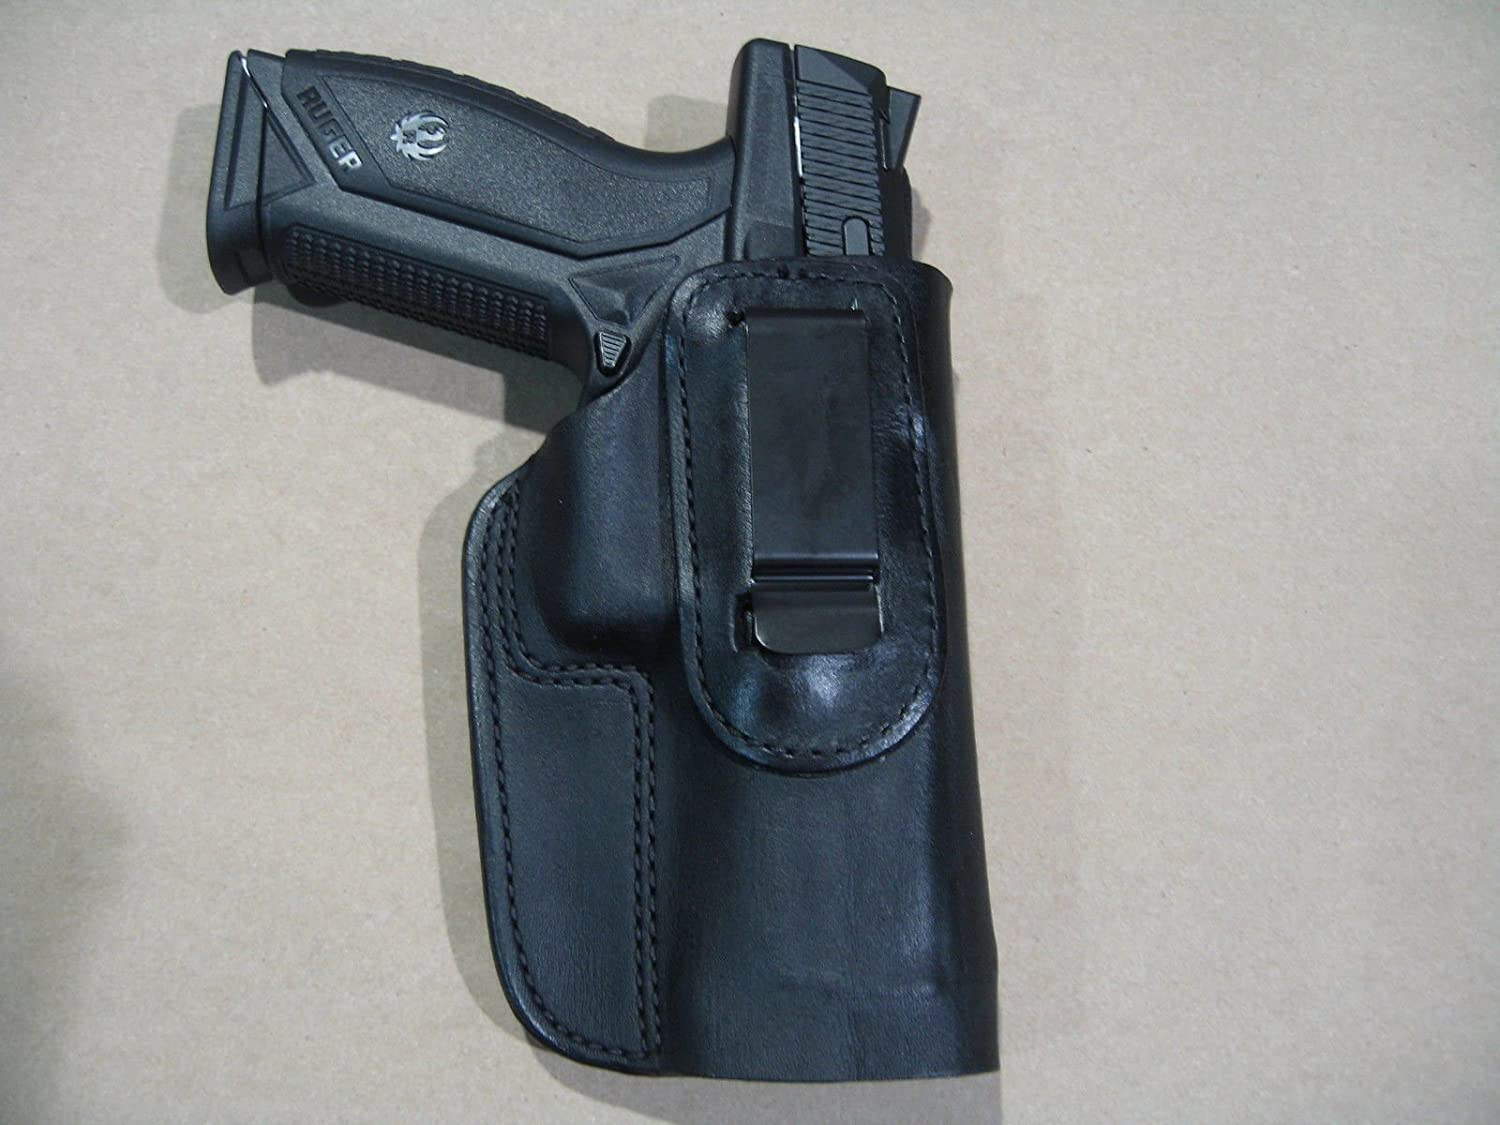 Ruger American Pistol IWB Leather In The Waistband Concealed Carry Holster  BLACK RH